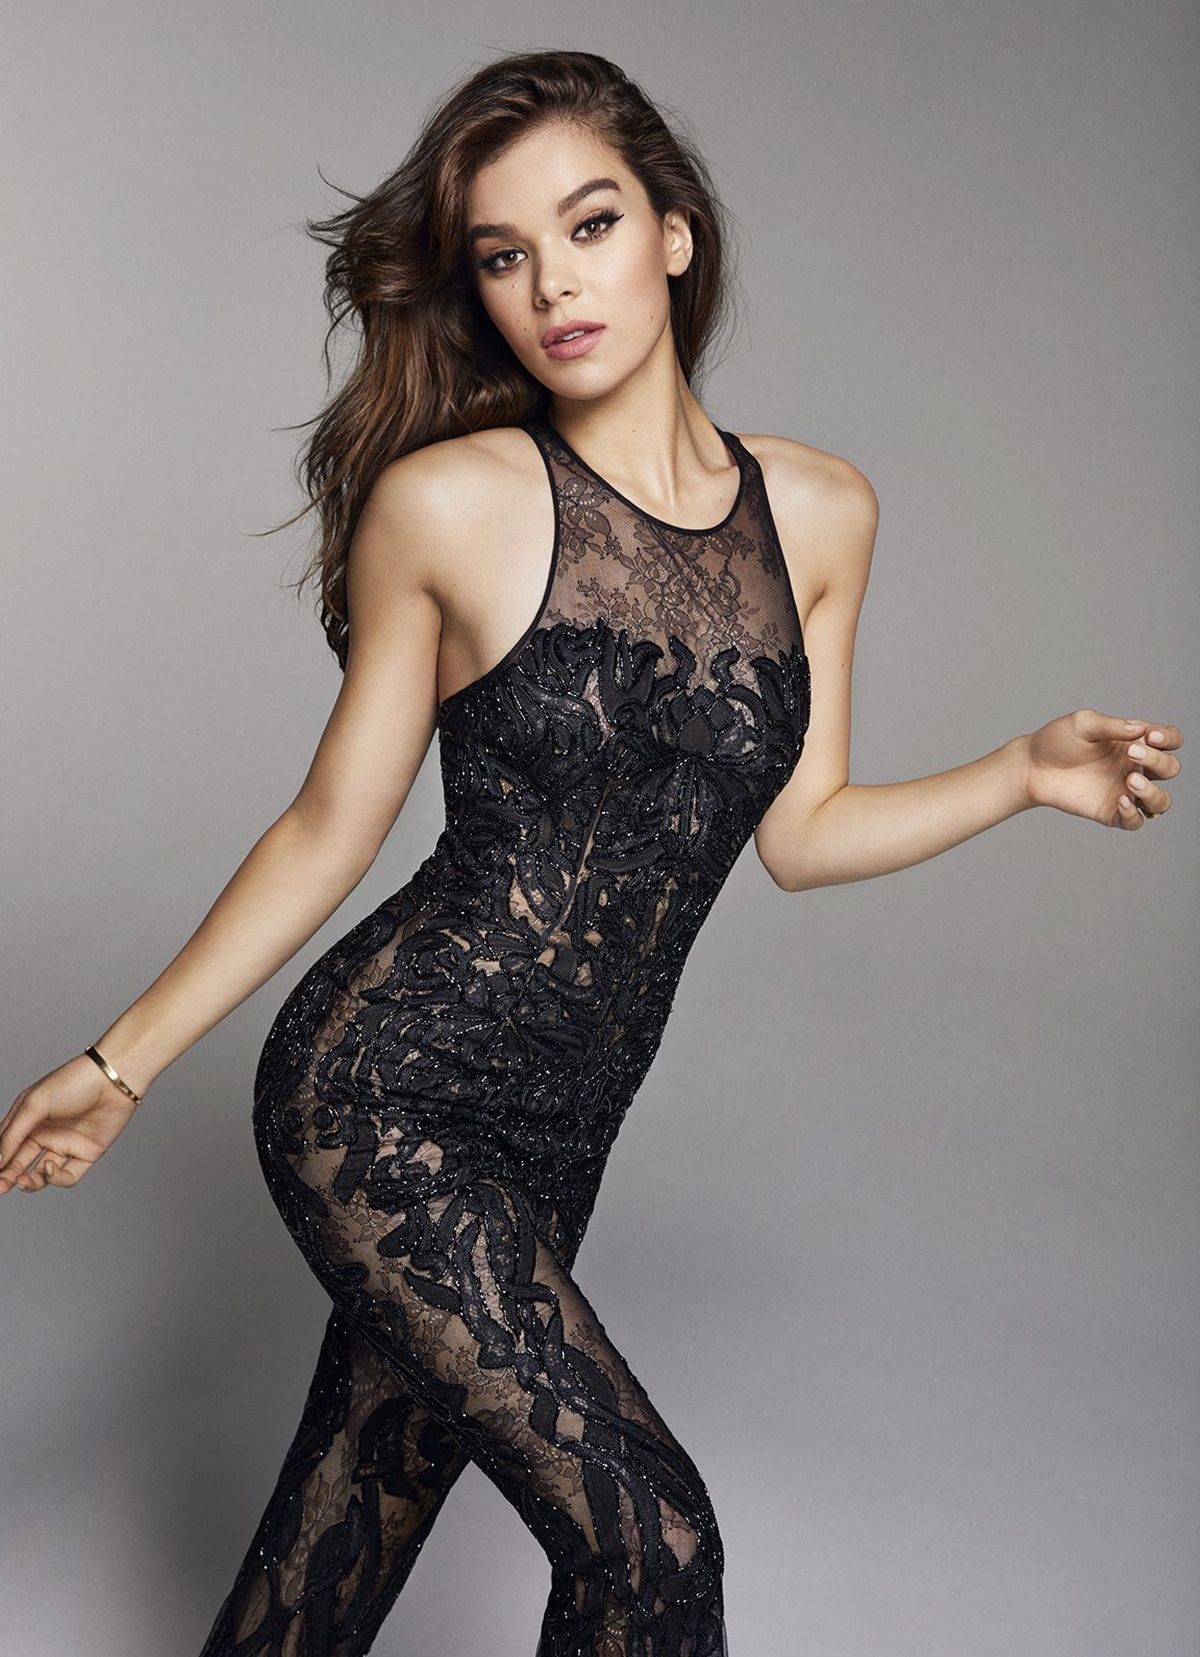 Hailee Steinfeld nudes (92 photos), video Sideboobs, Instagram, underwear 2017